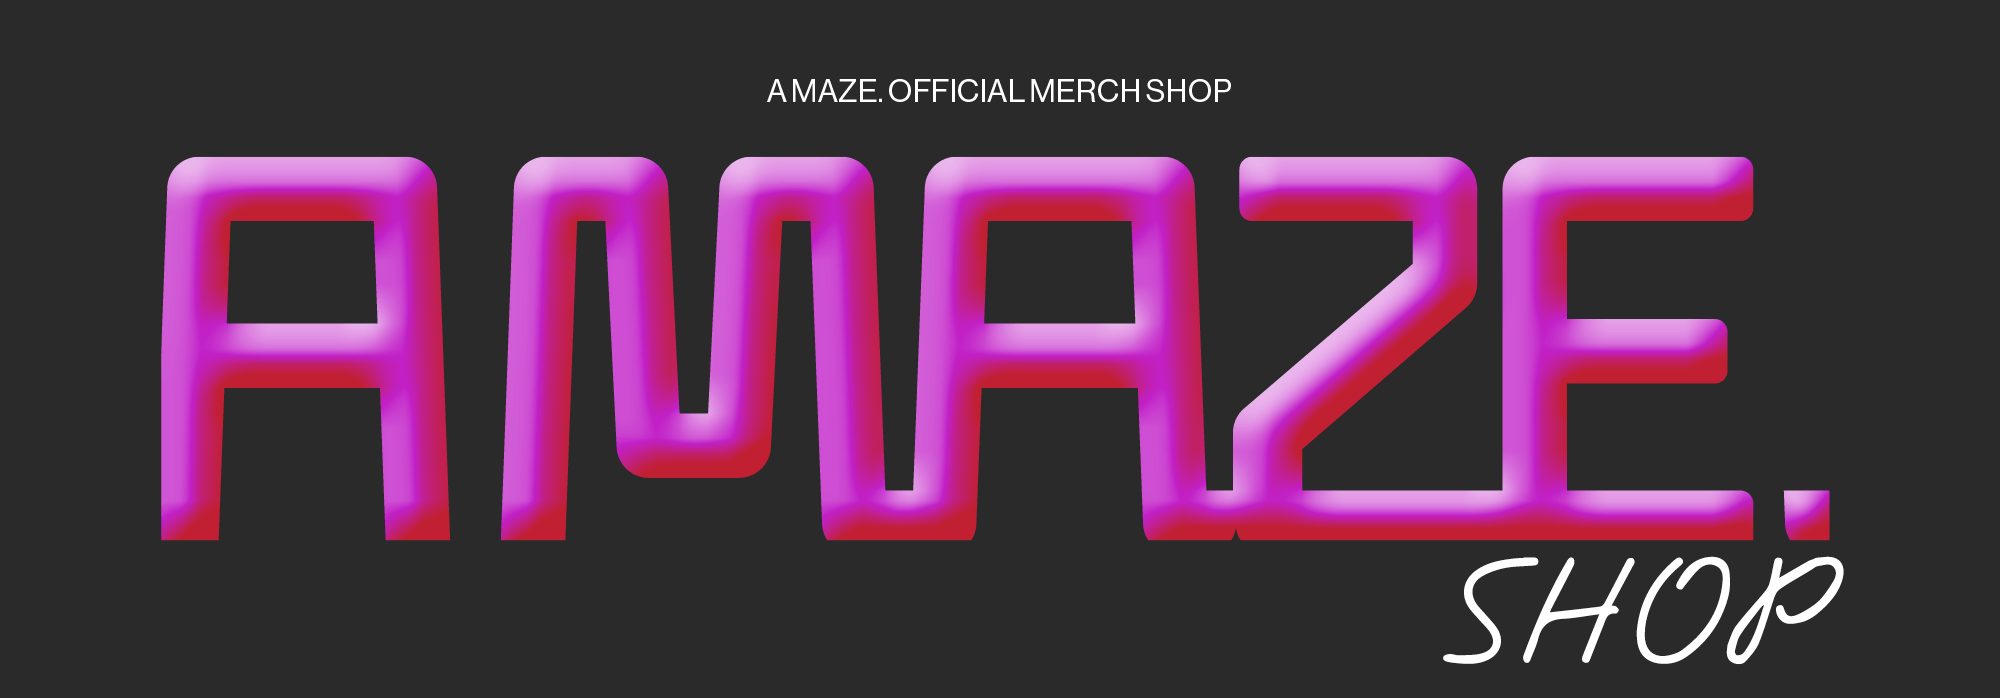 The Most Amazing Face of Playing Since 2008 - The Official A MAZE. Merch Shop